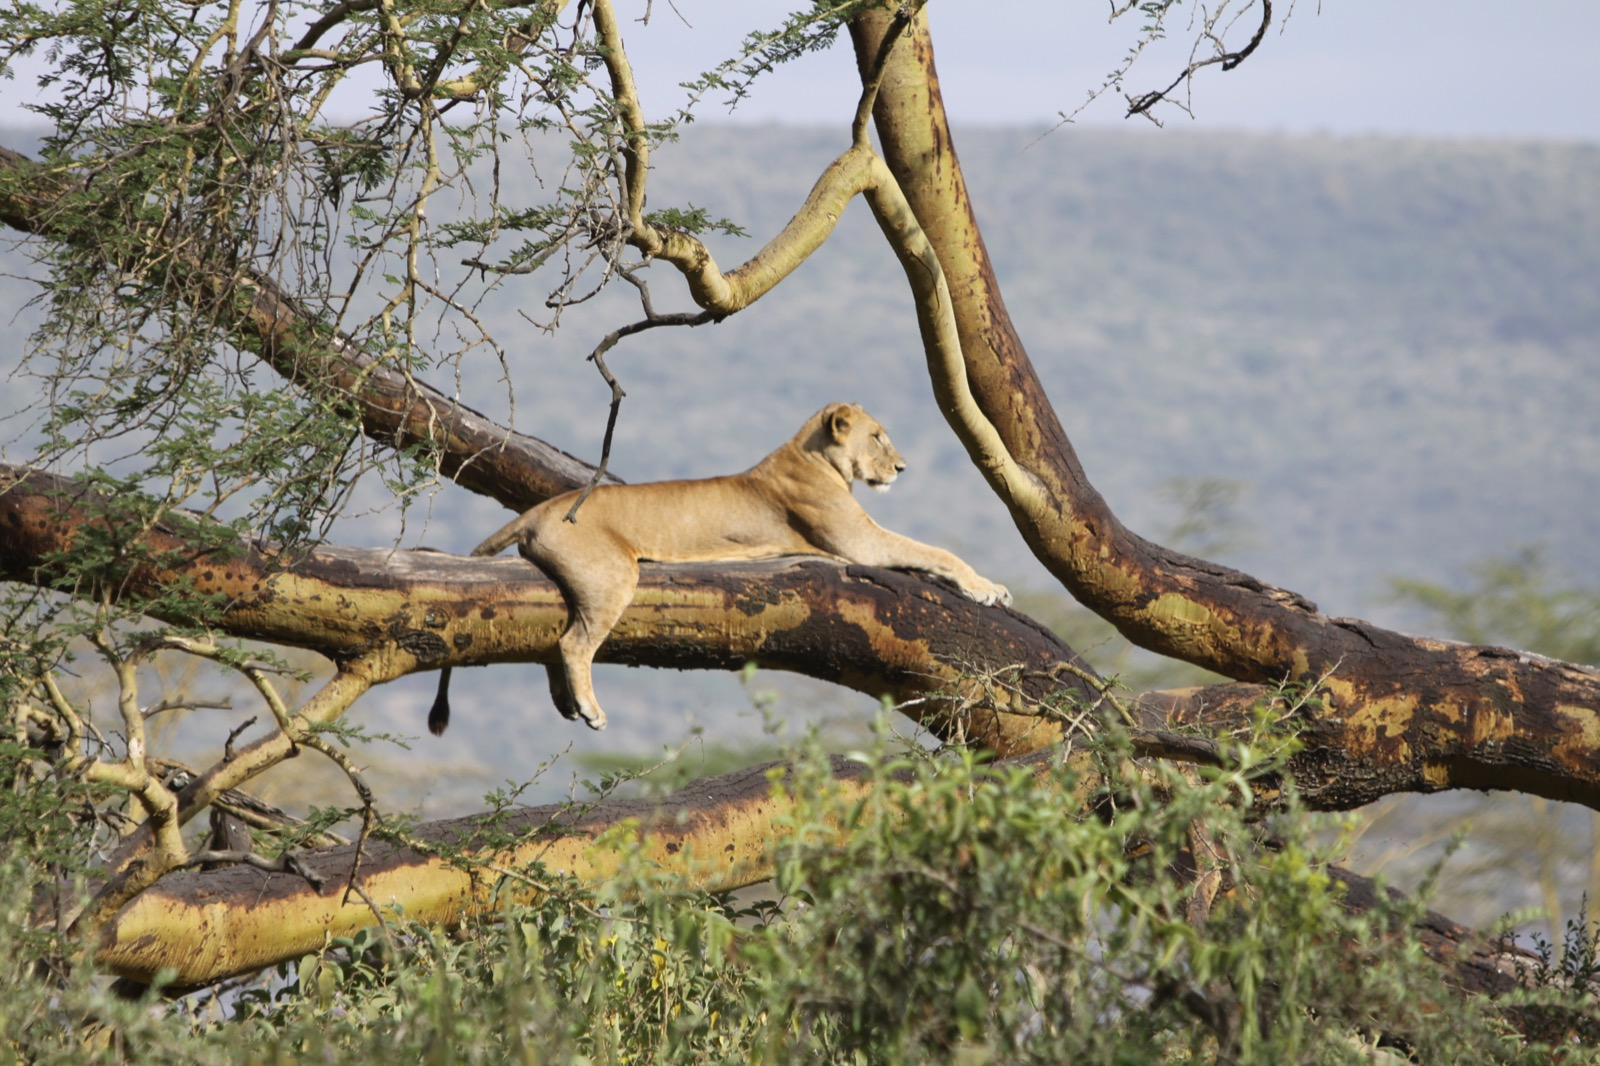 A lioness lounges on the branch of a large tree.